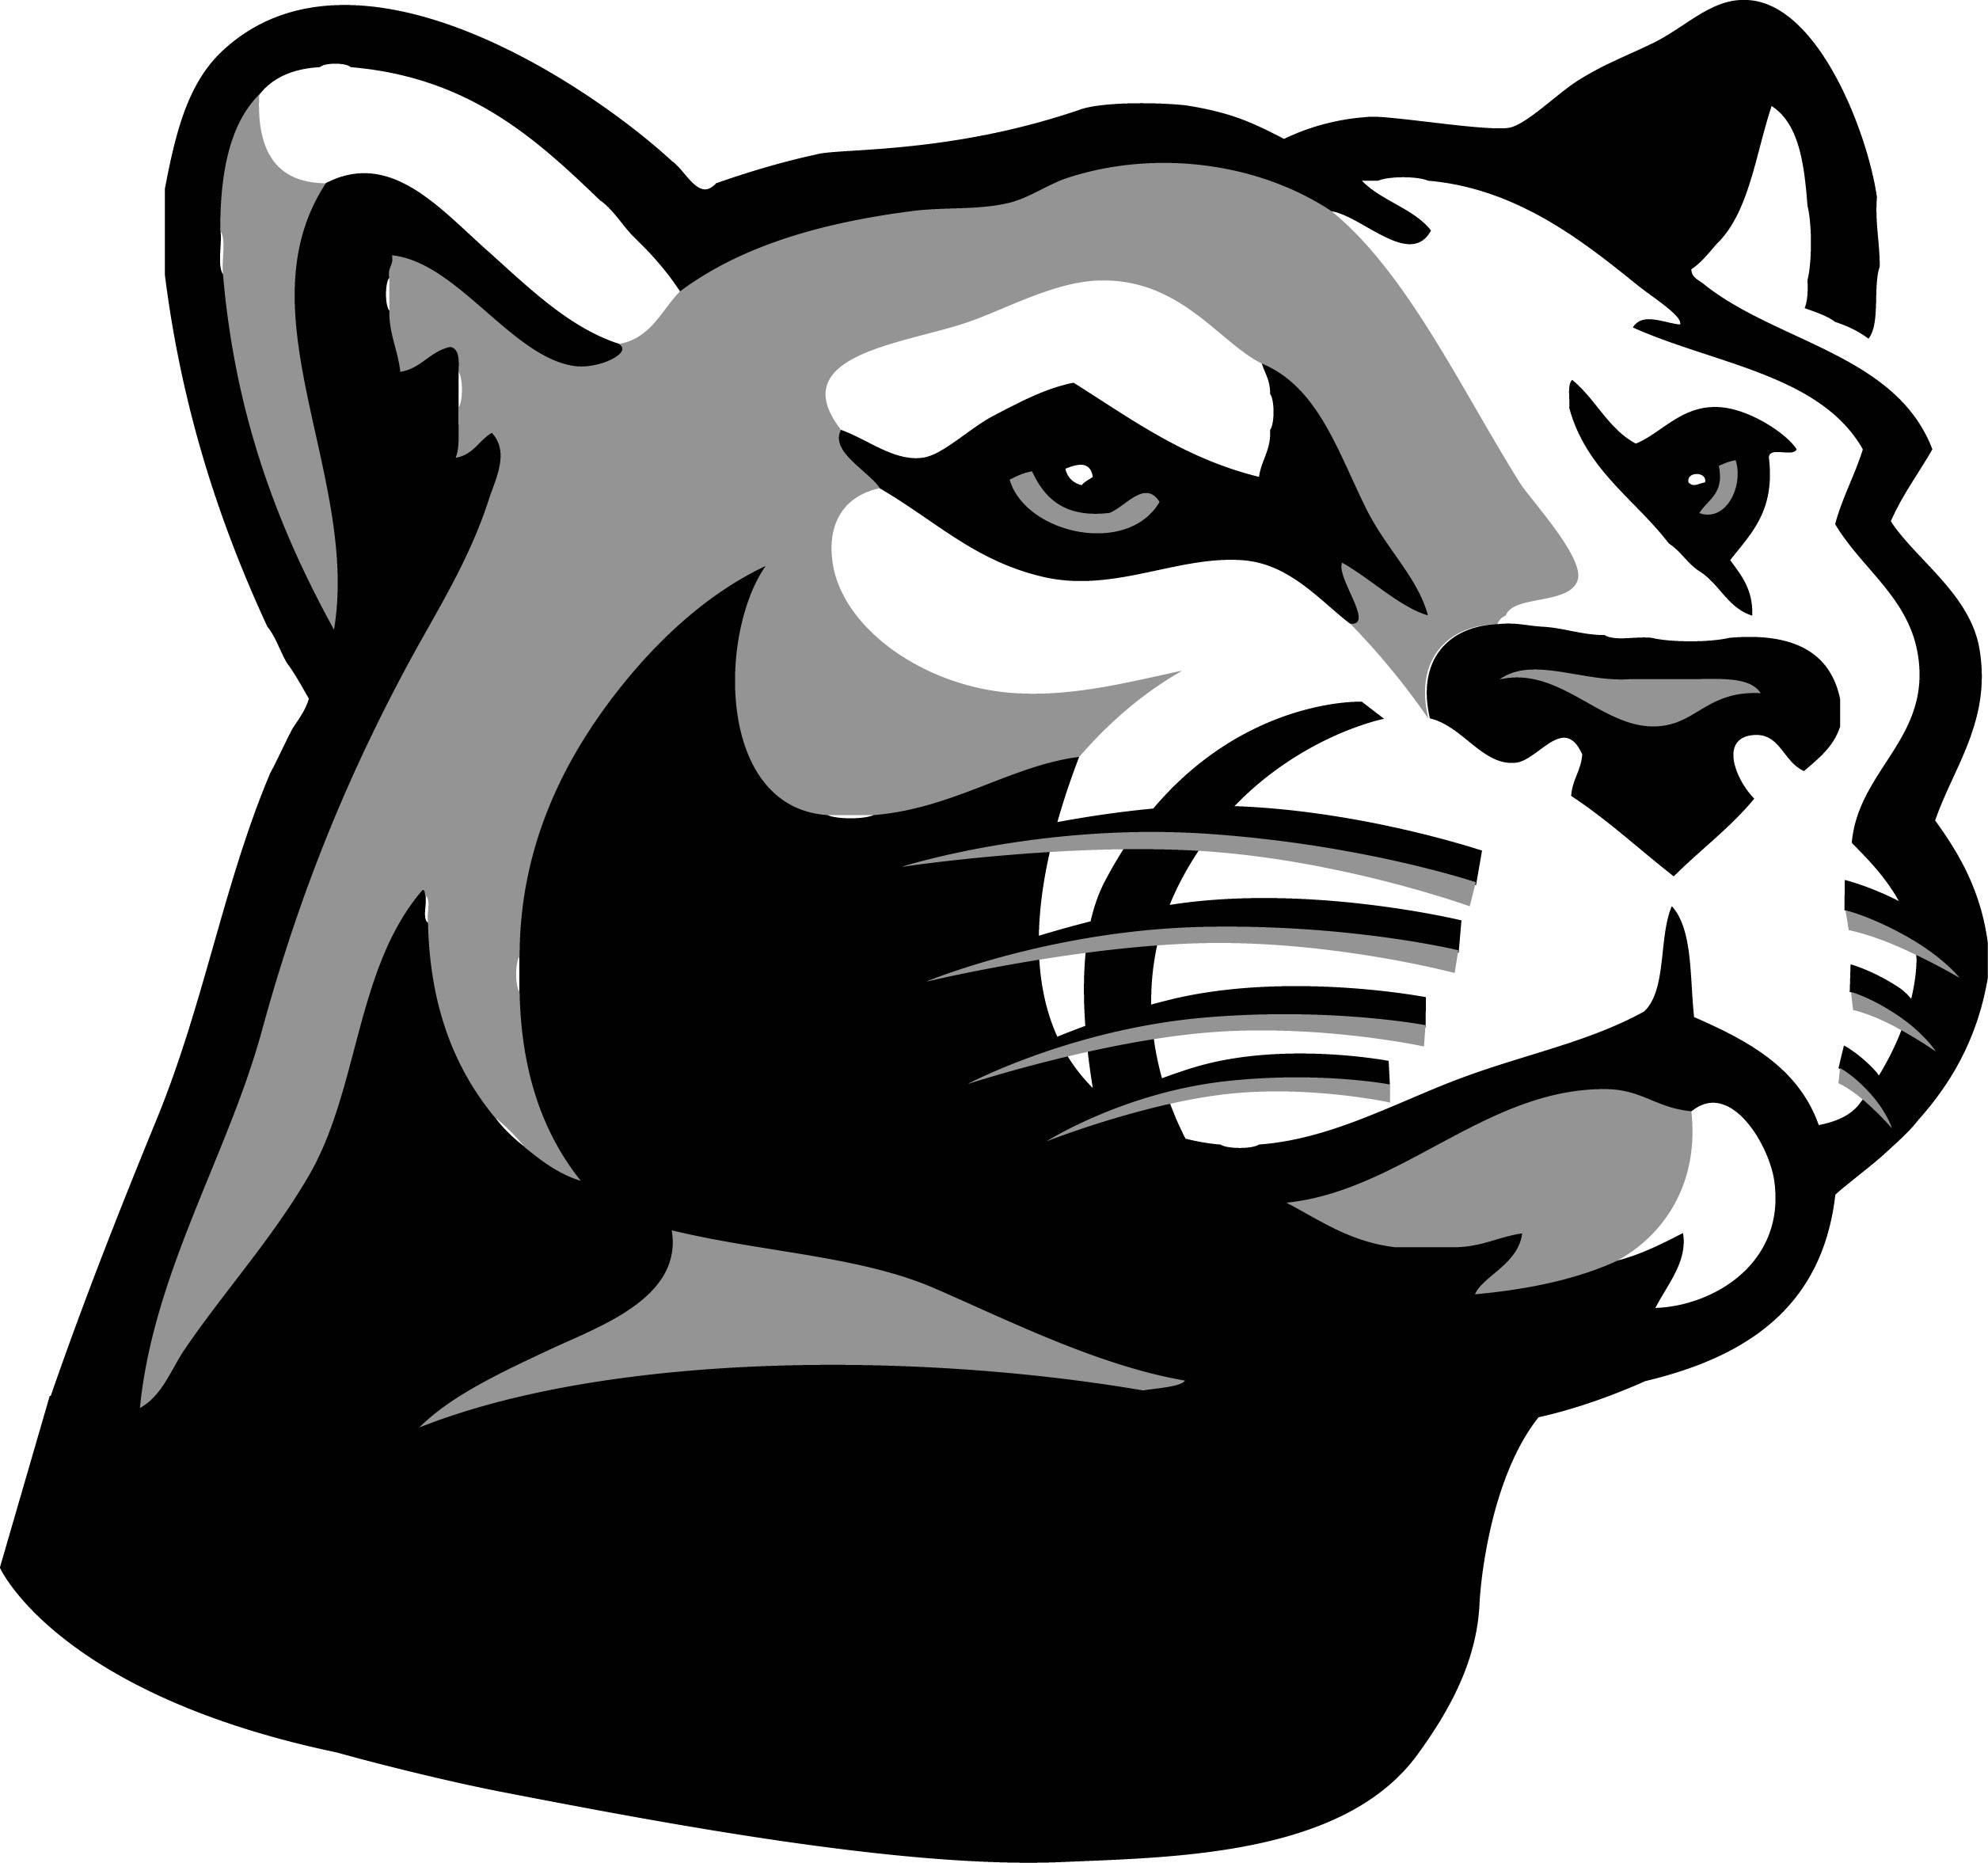 Black panther head clipart.